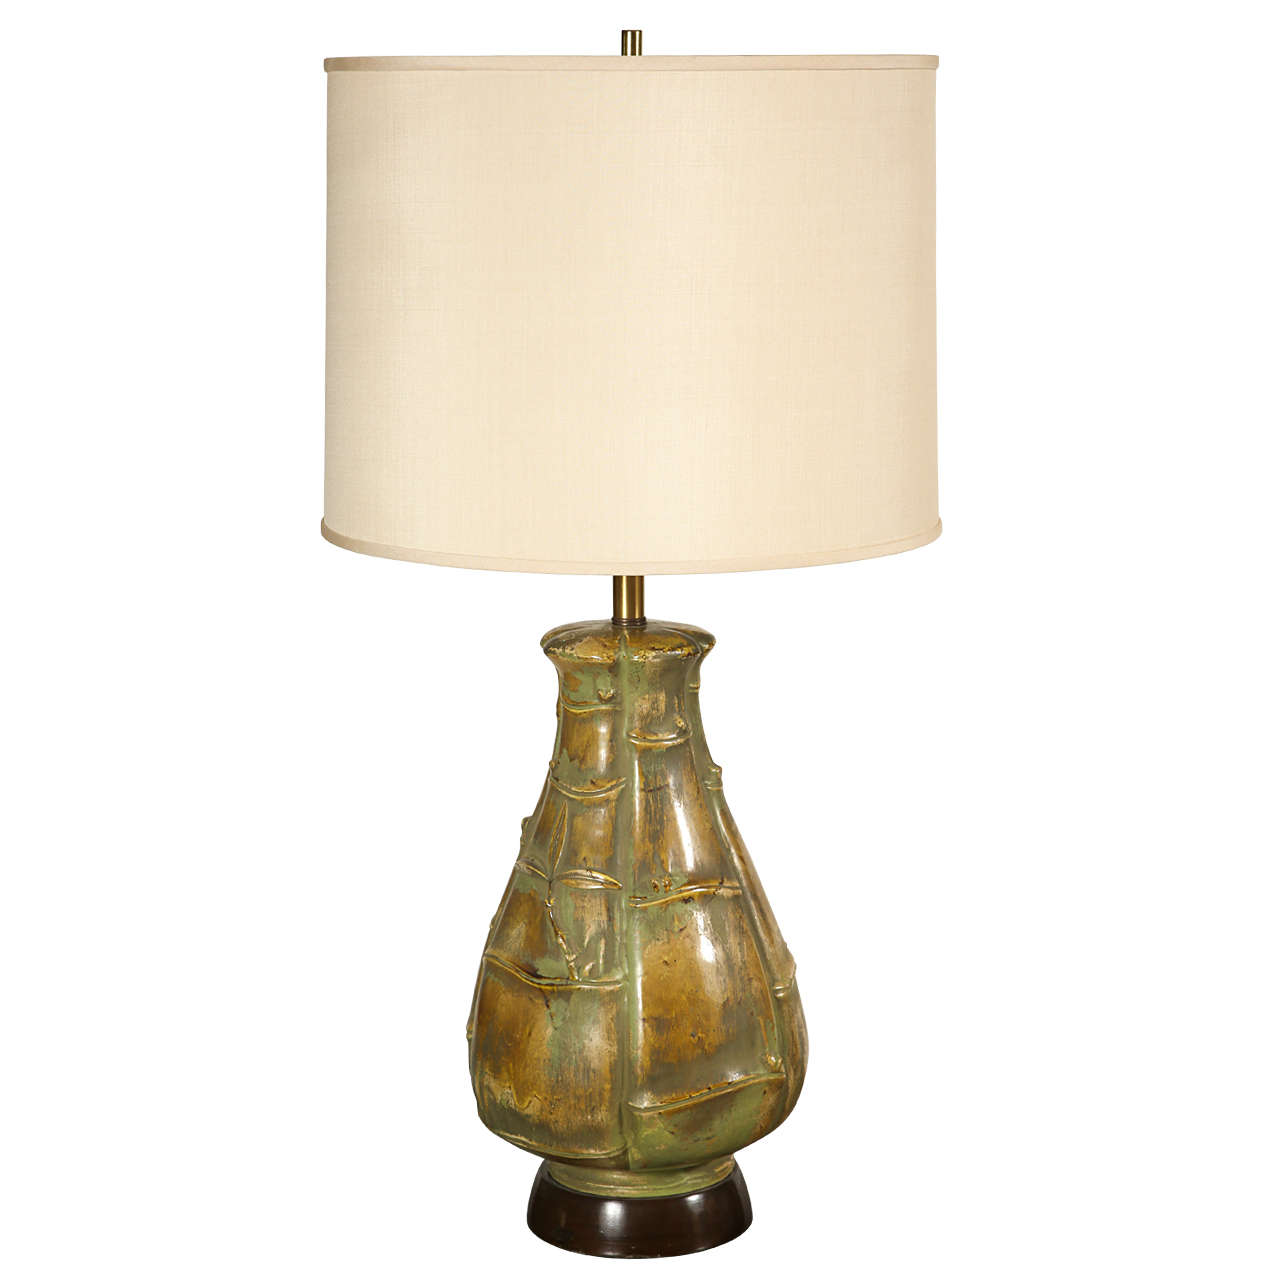 Arts And Crafts Style Ceramic Lamp at 1stdibs